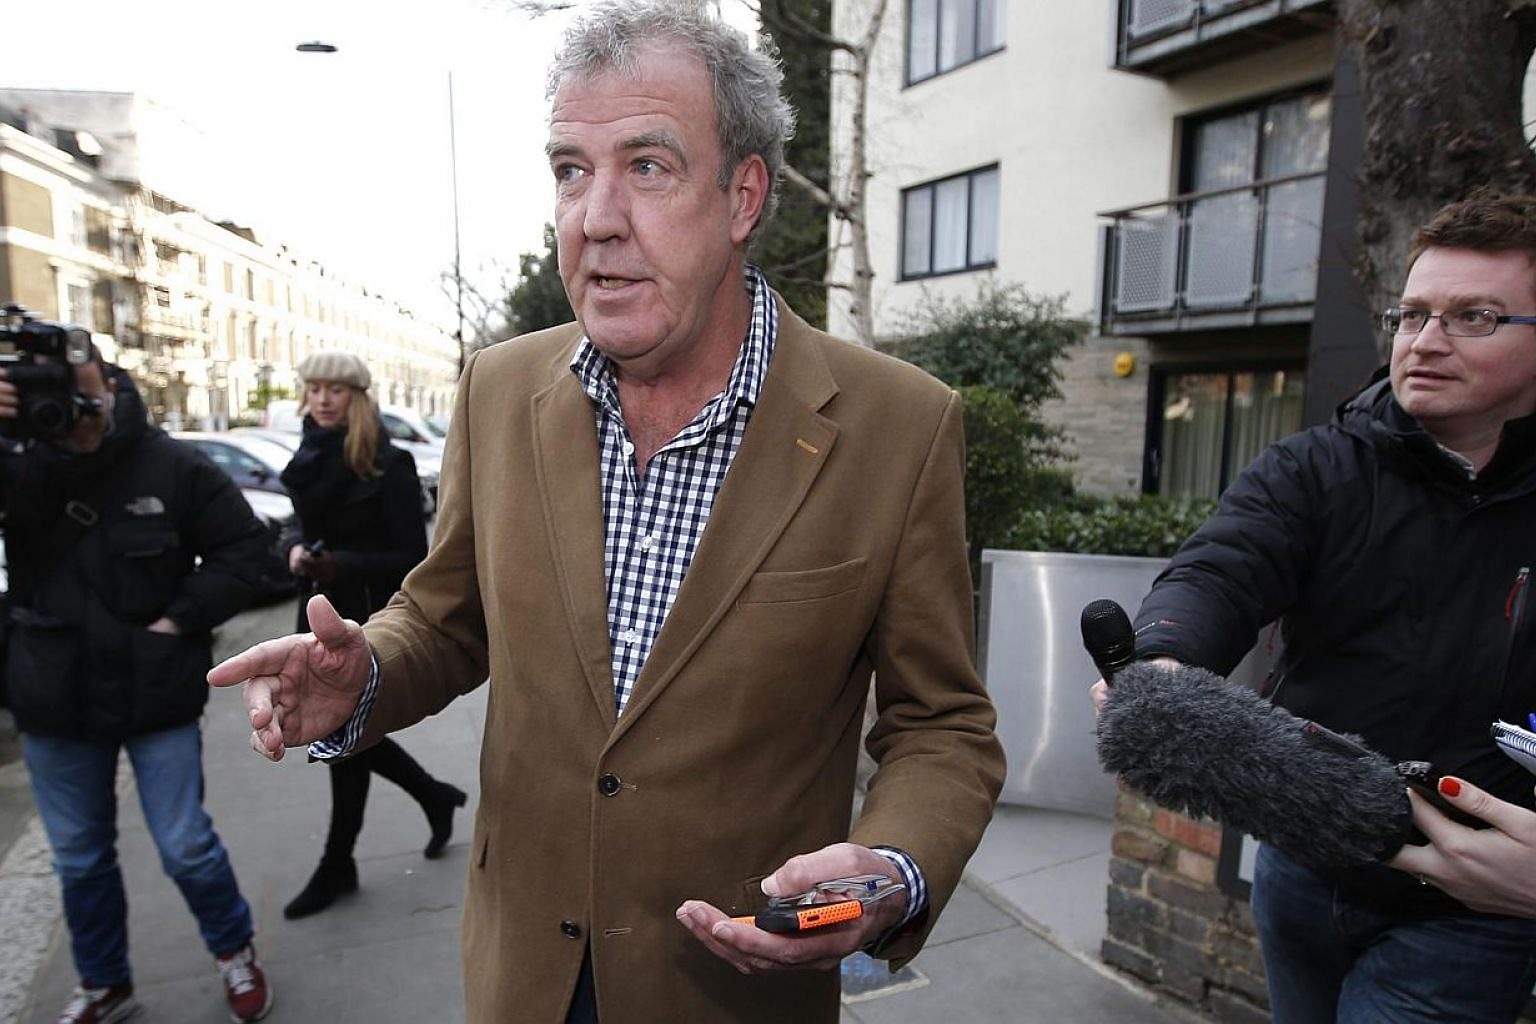 British television presenter Jeremy Clarkson leaves his home in London March 24, 2015.Clarkson will continue to appear on an international tour of live auto shows despite being dropped as the presenter of hit series Top Gear, the BBC said on Tu